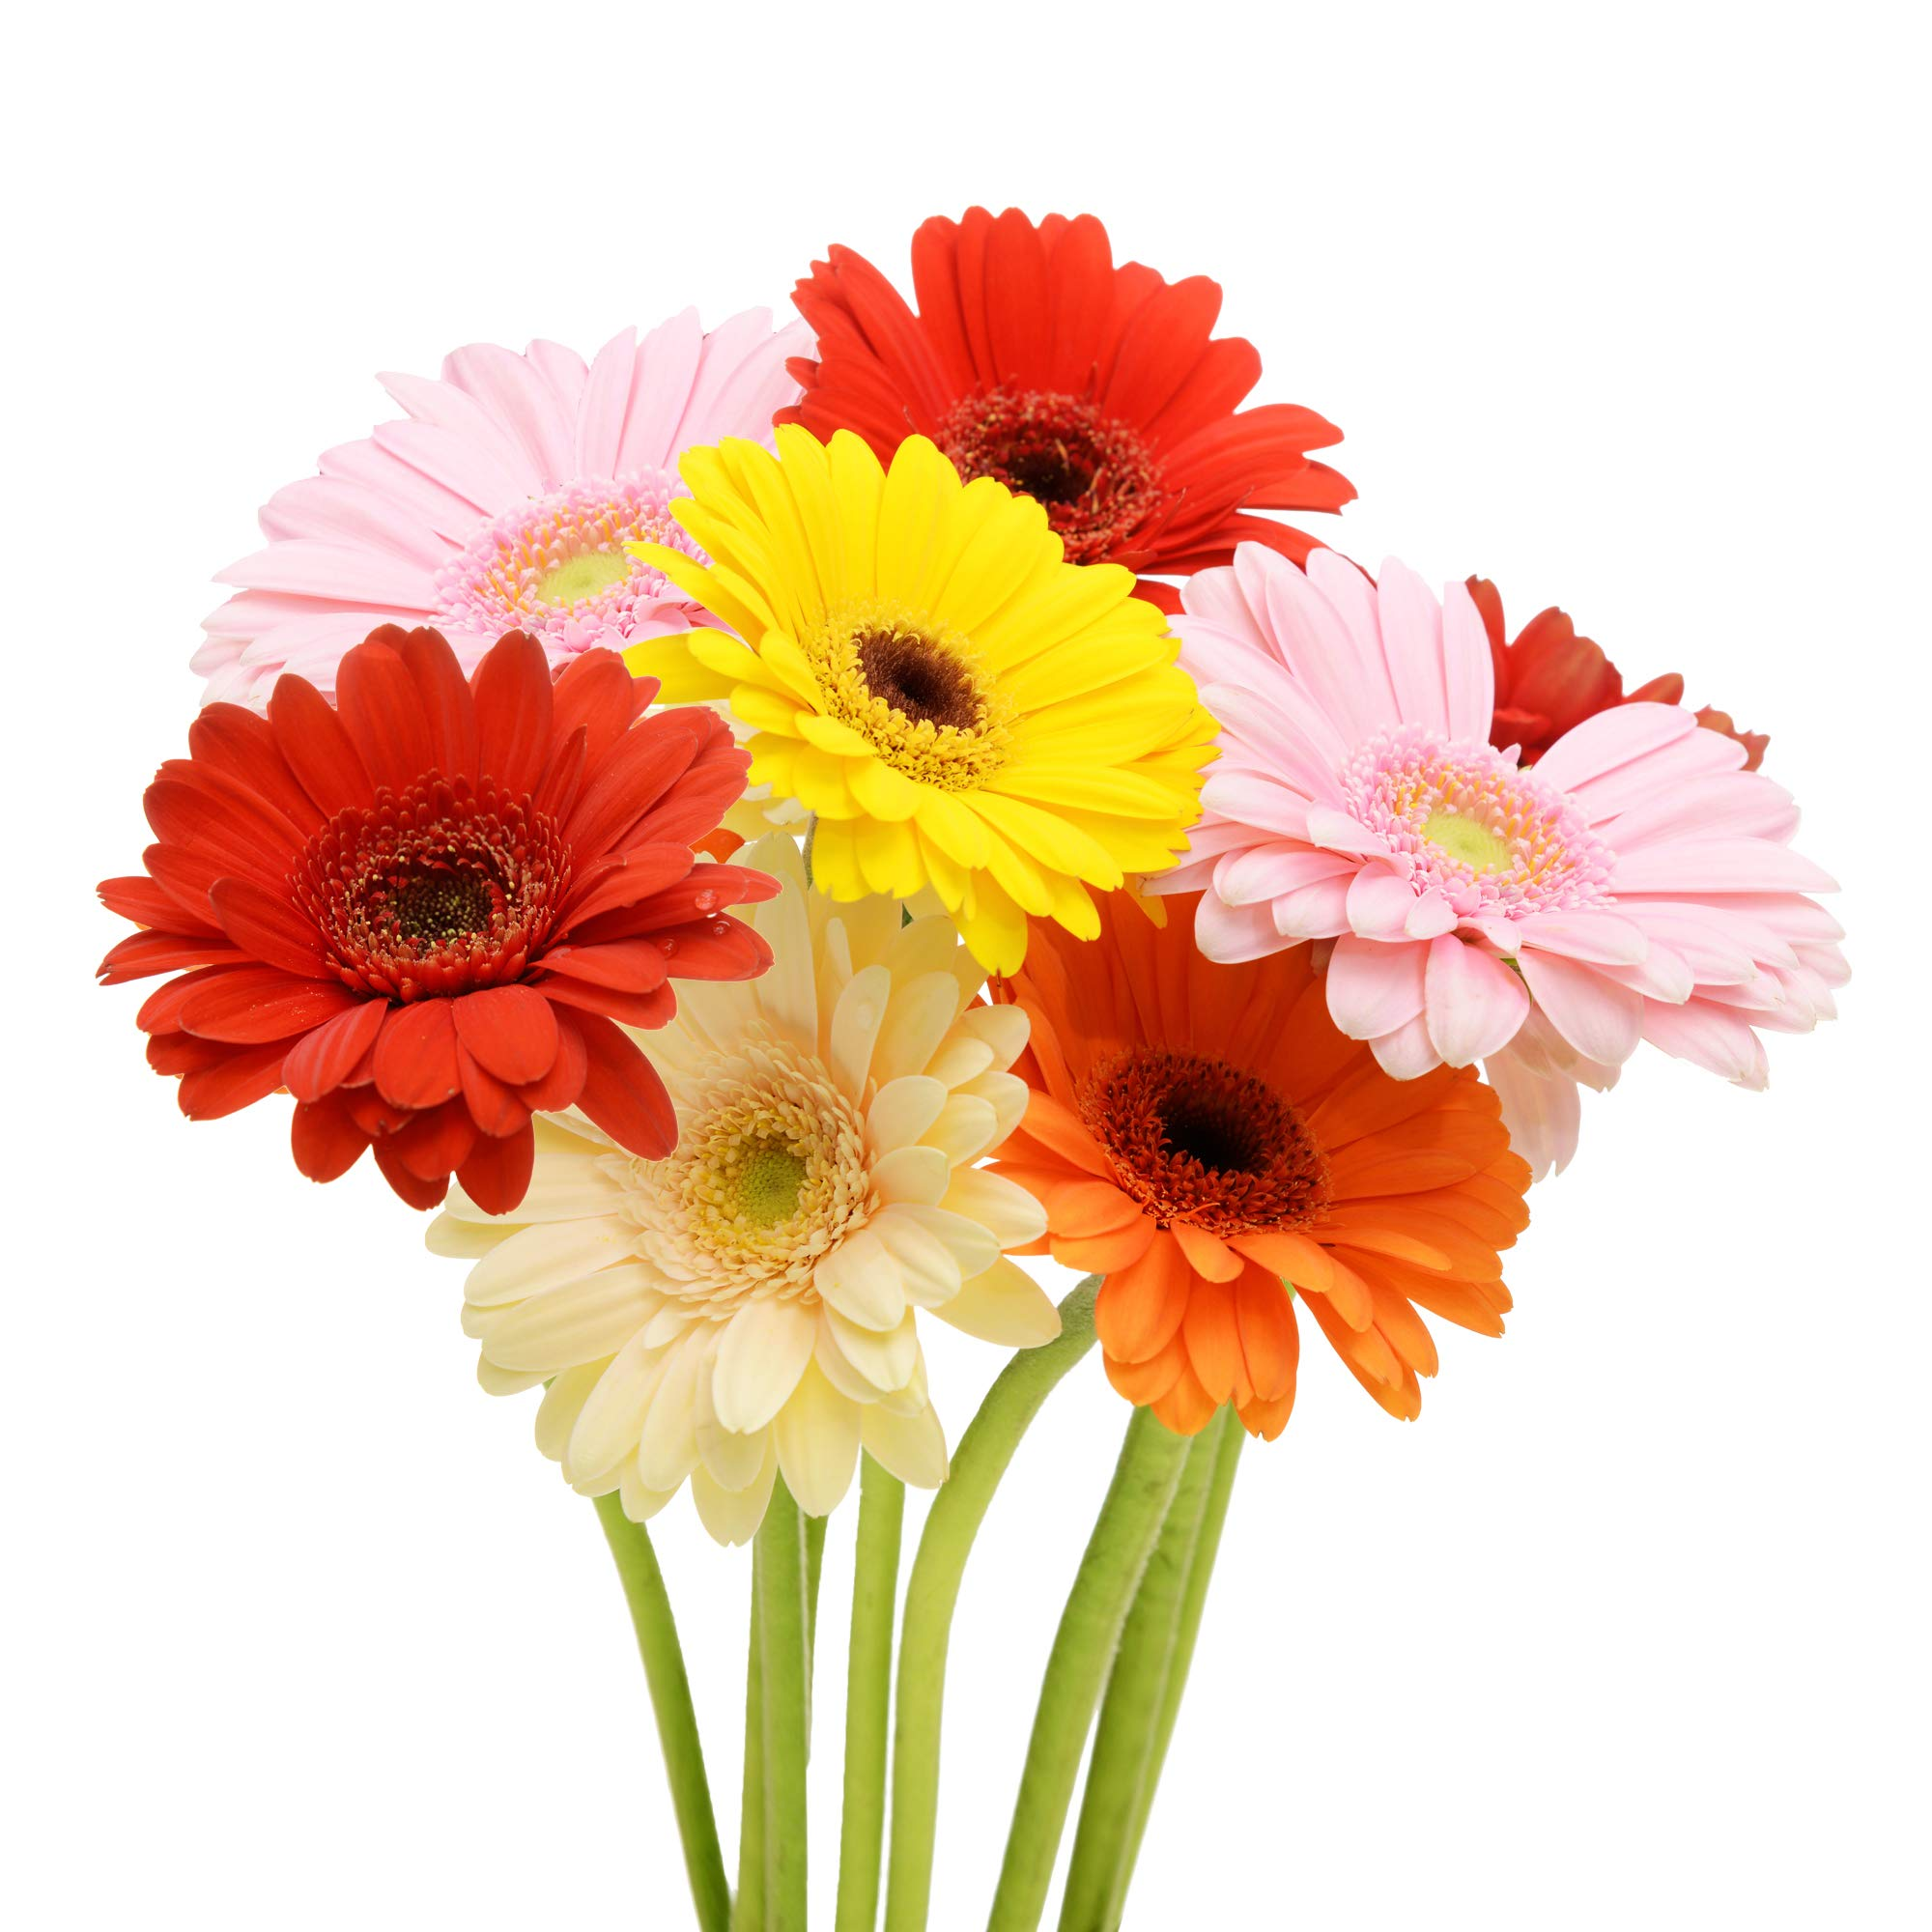 Assorted Gerberas - 50 Stems by Bloomingmore